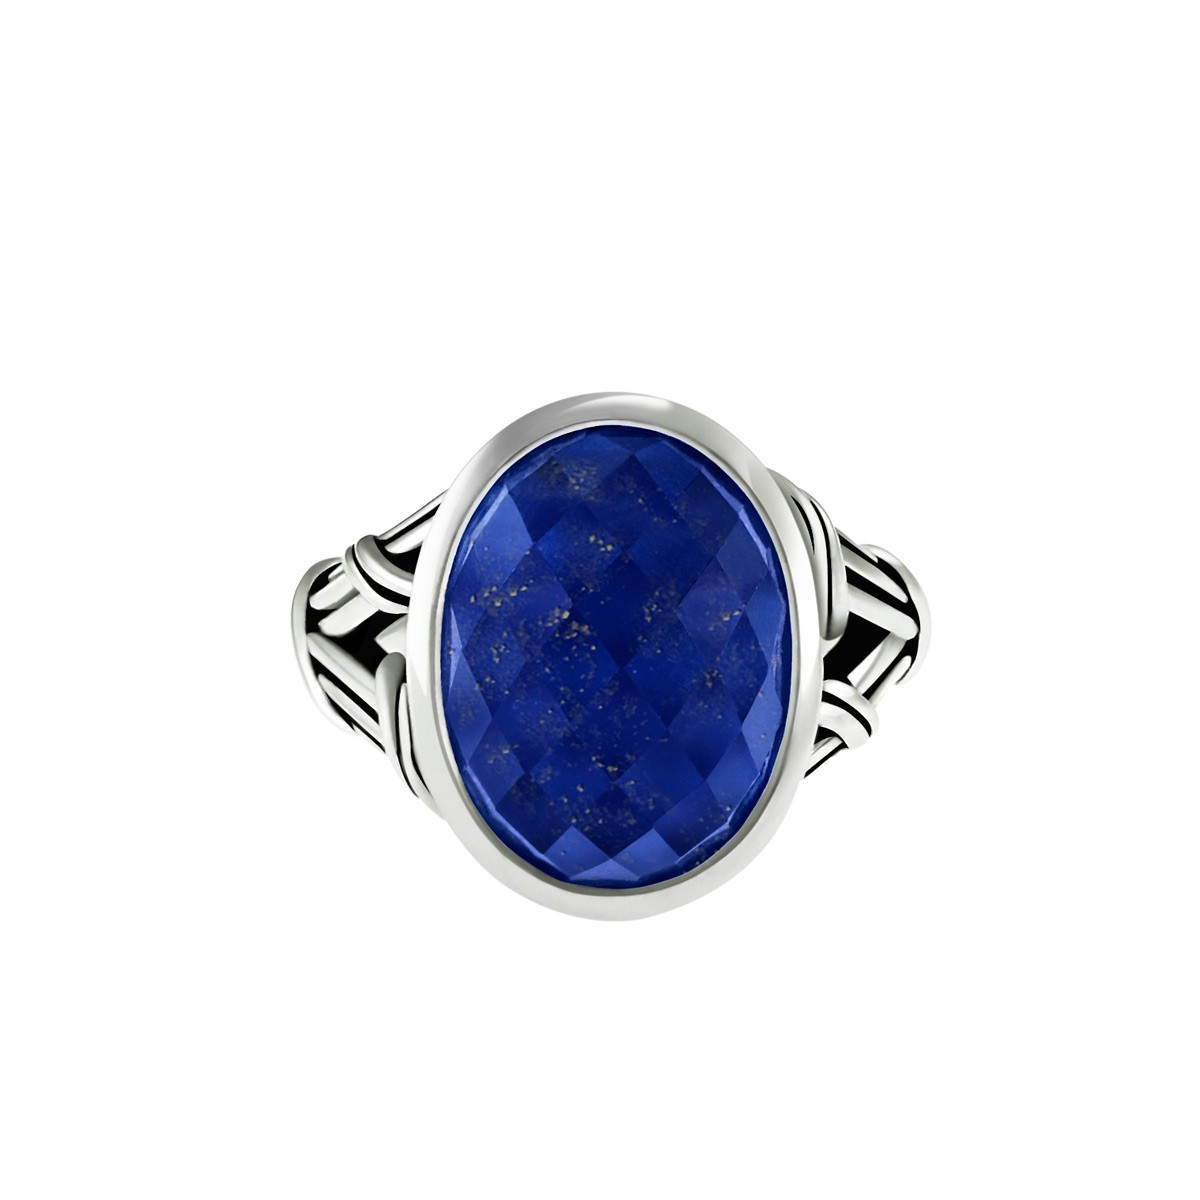 Fantasies Lapis Doublet Cocktail Ring with rock crystal in sterling silver